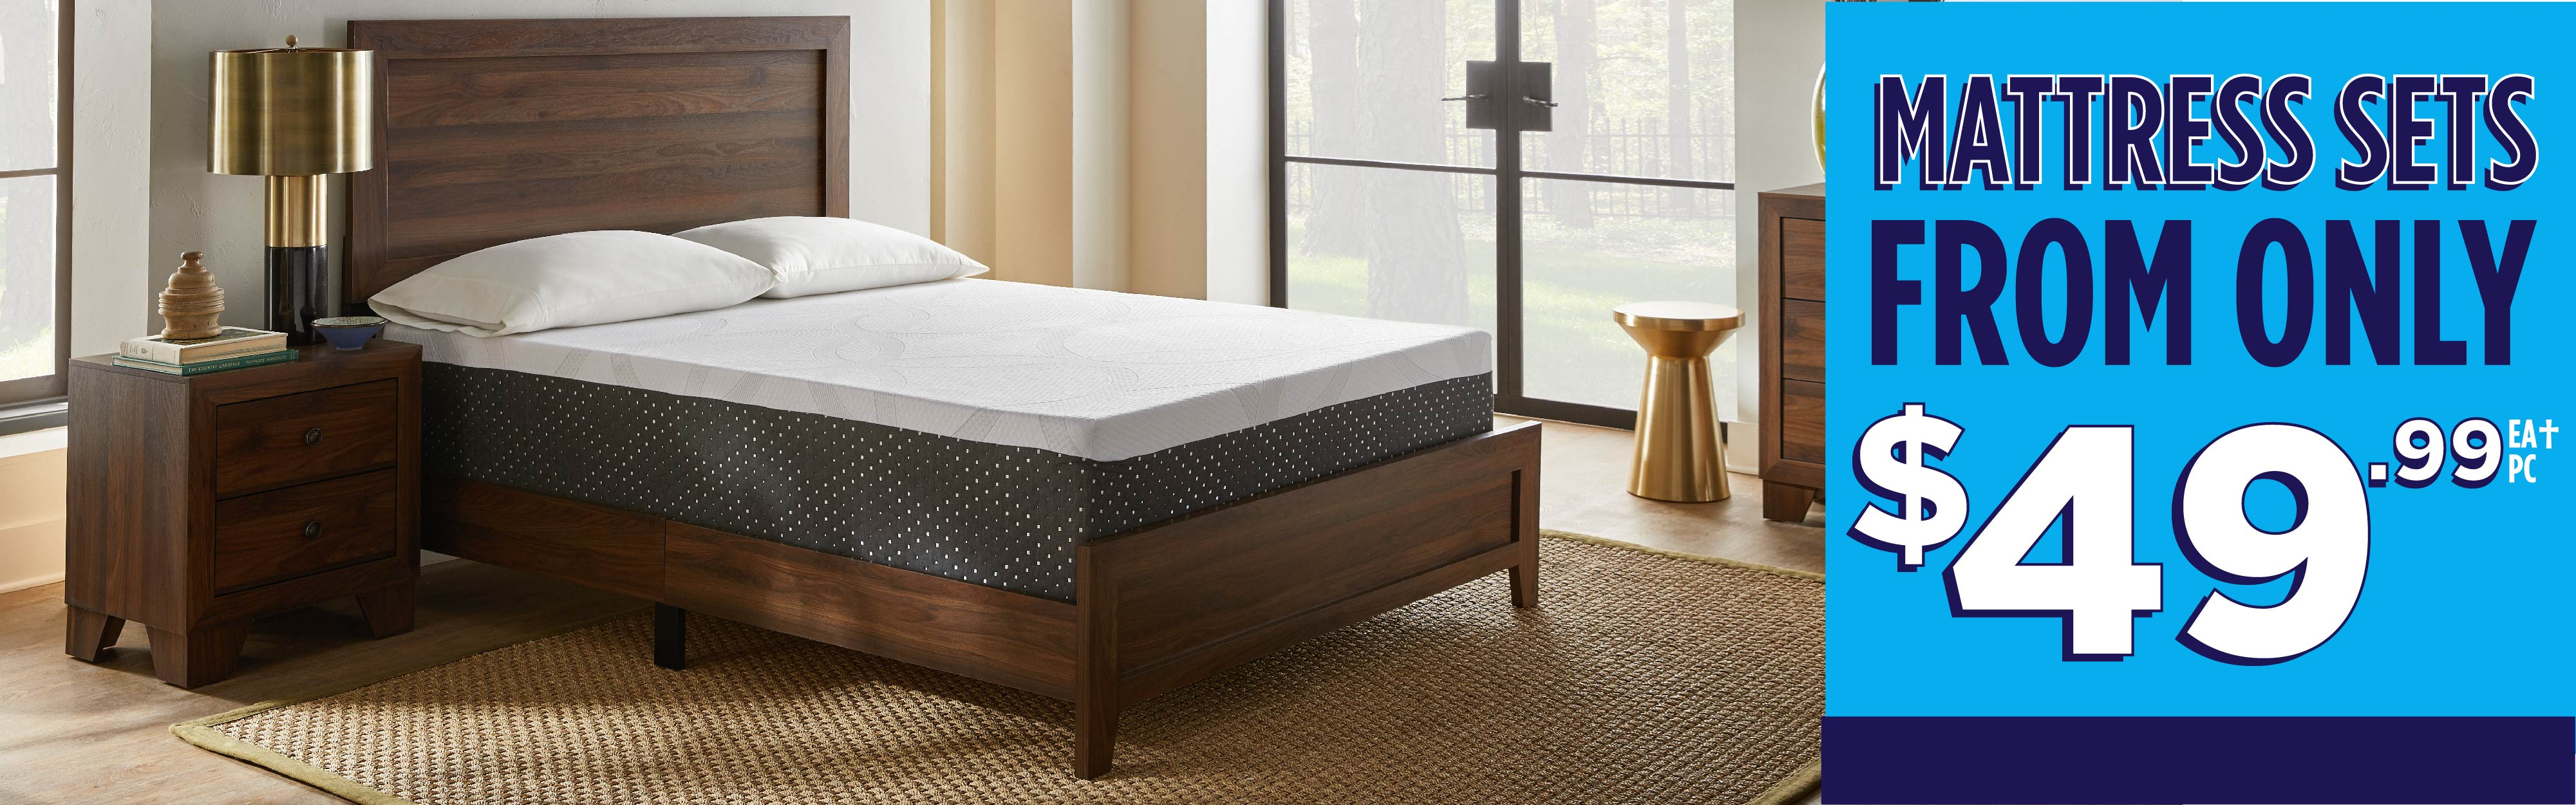 Mattress Sets from only $49.99!